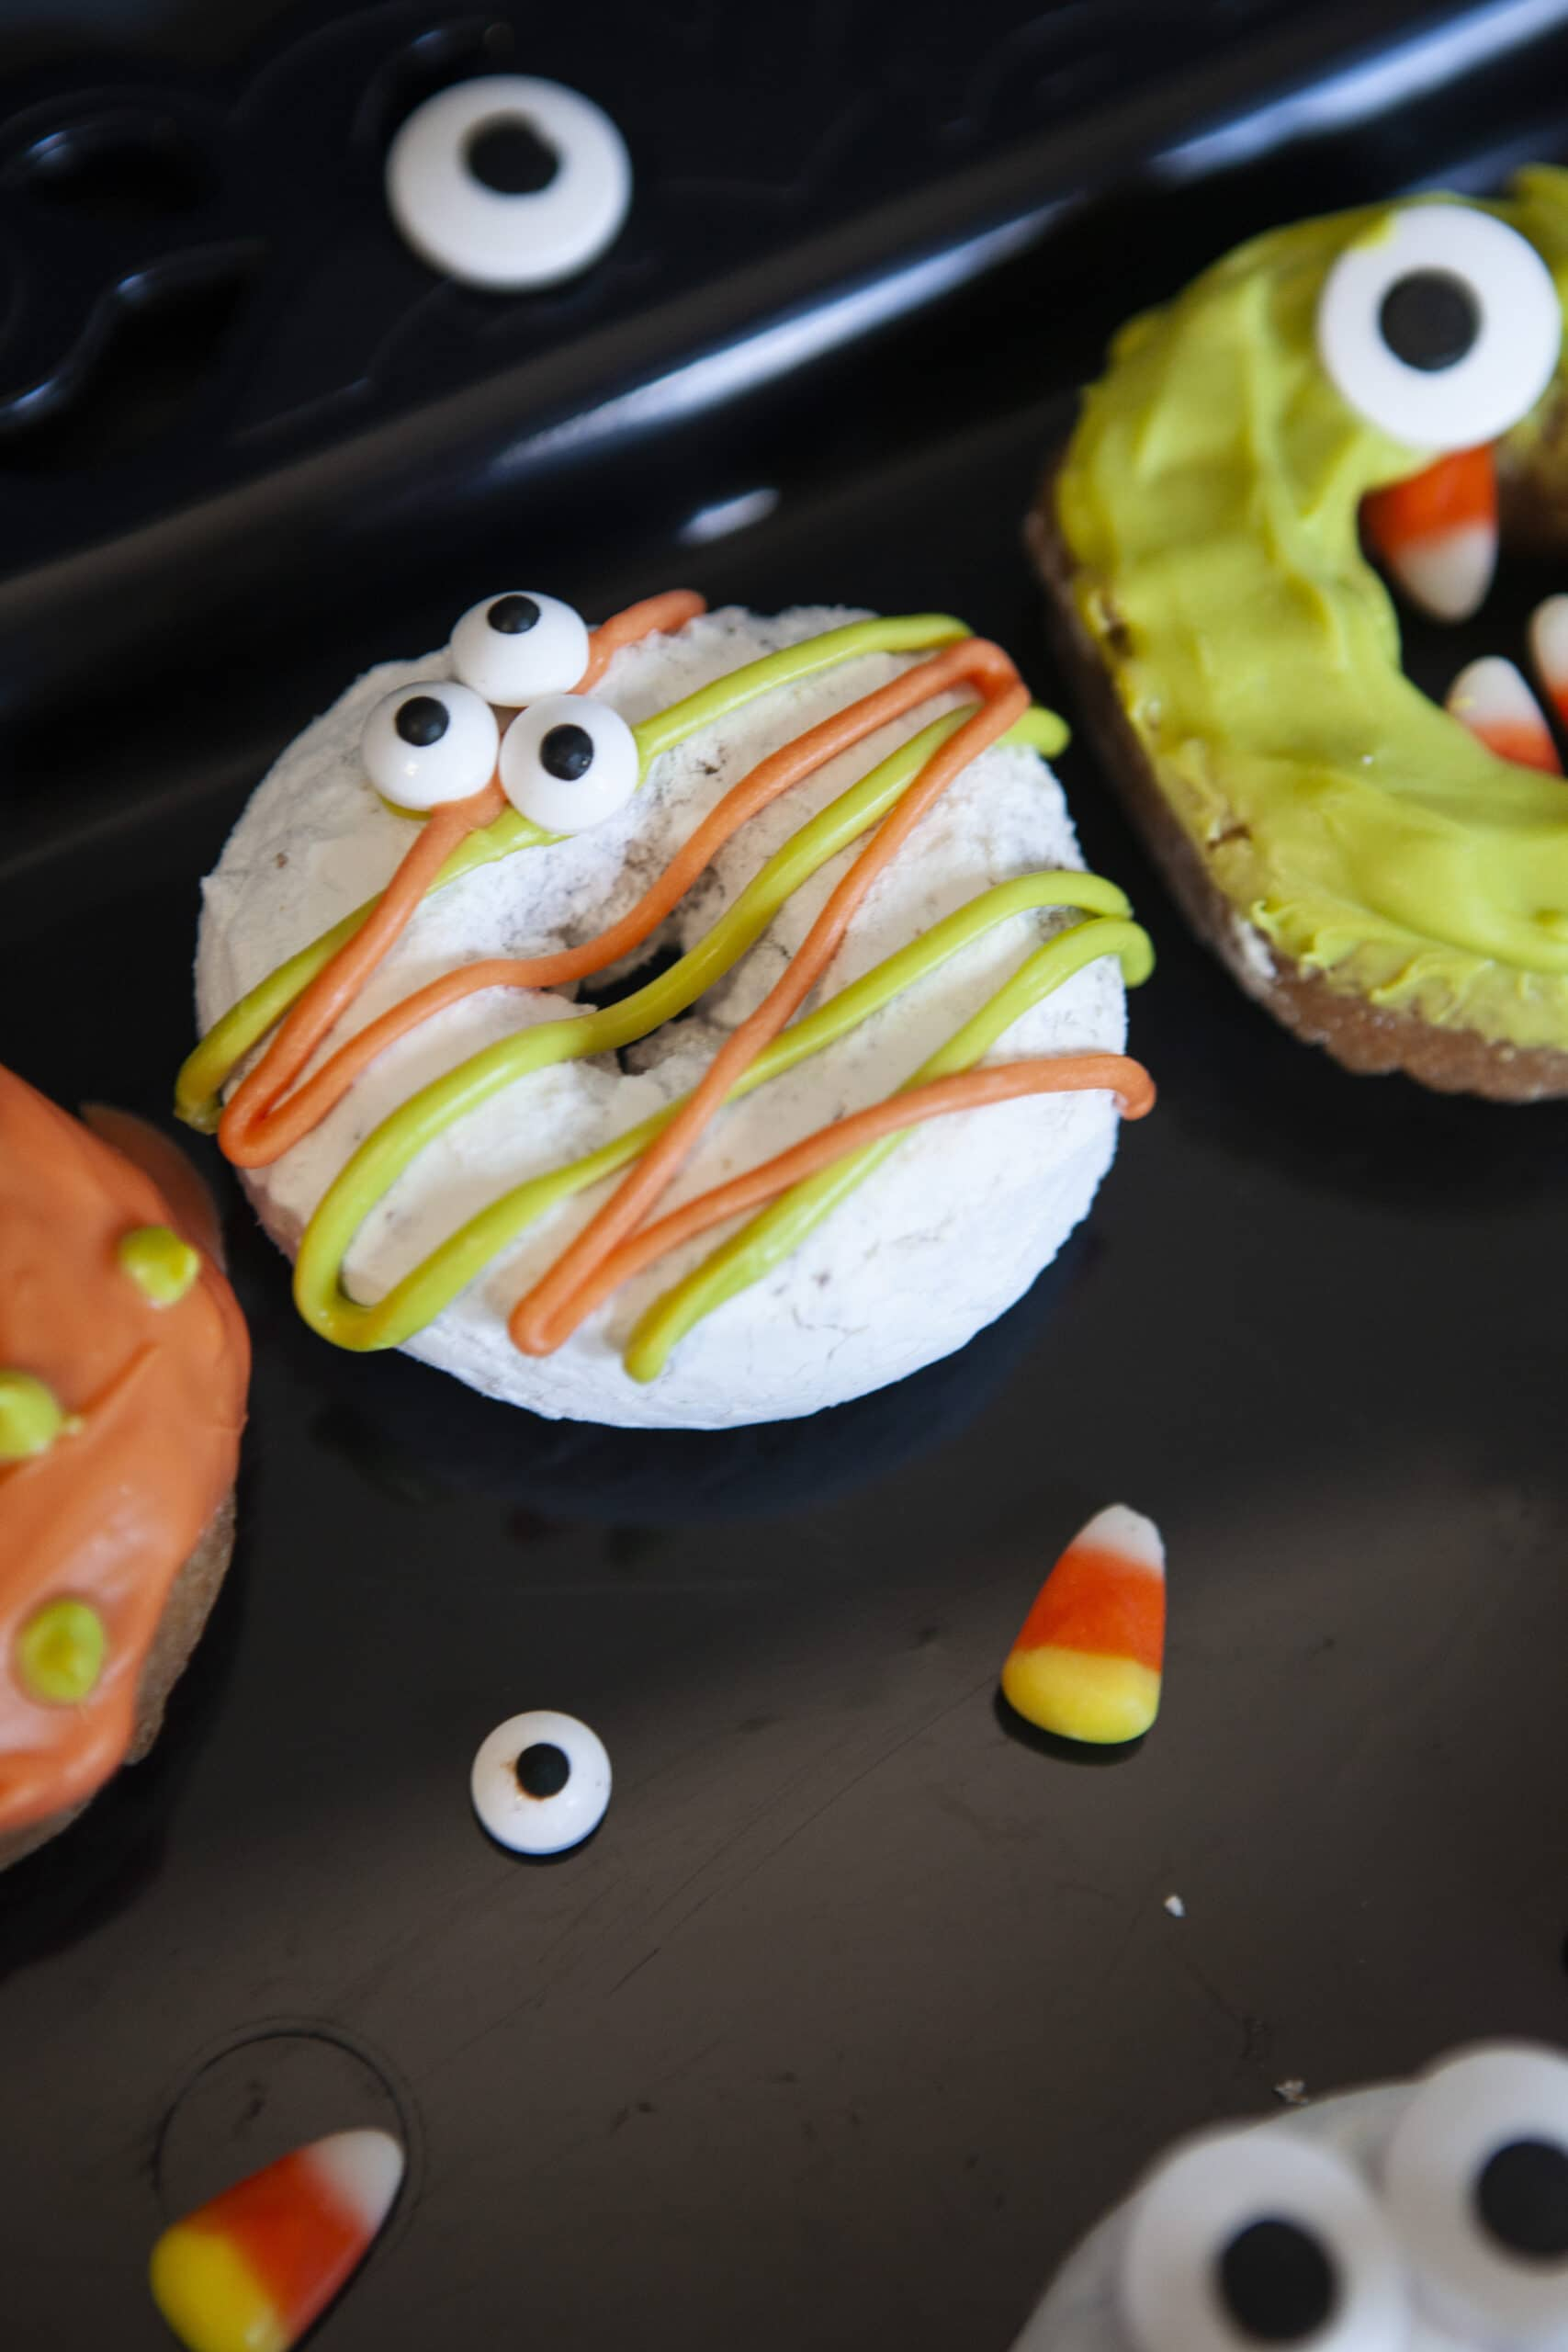 Monster Donuts Crazy Eyes. Make these spooky cute Monster Donuts for your next Halloween event. Made with your favorite donuts as a base, you can create and decorate vampires, mummies, and other iconic edible Halloween monsters.